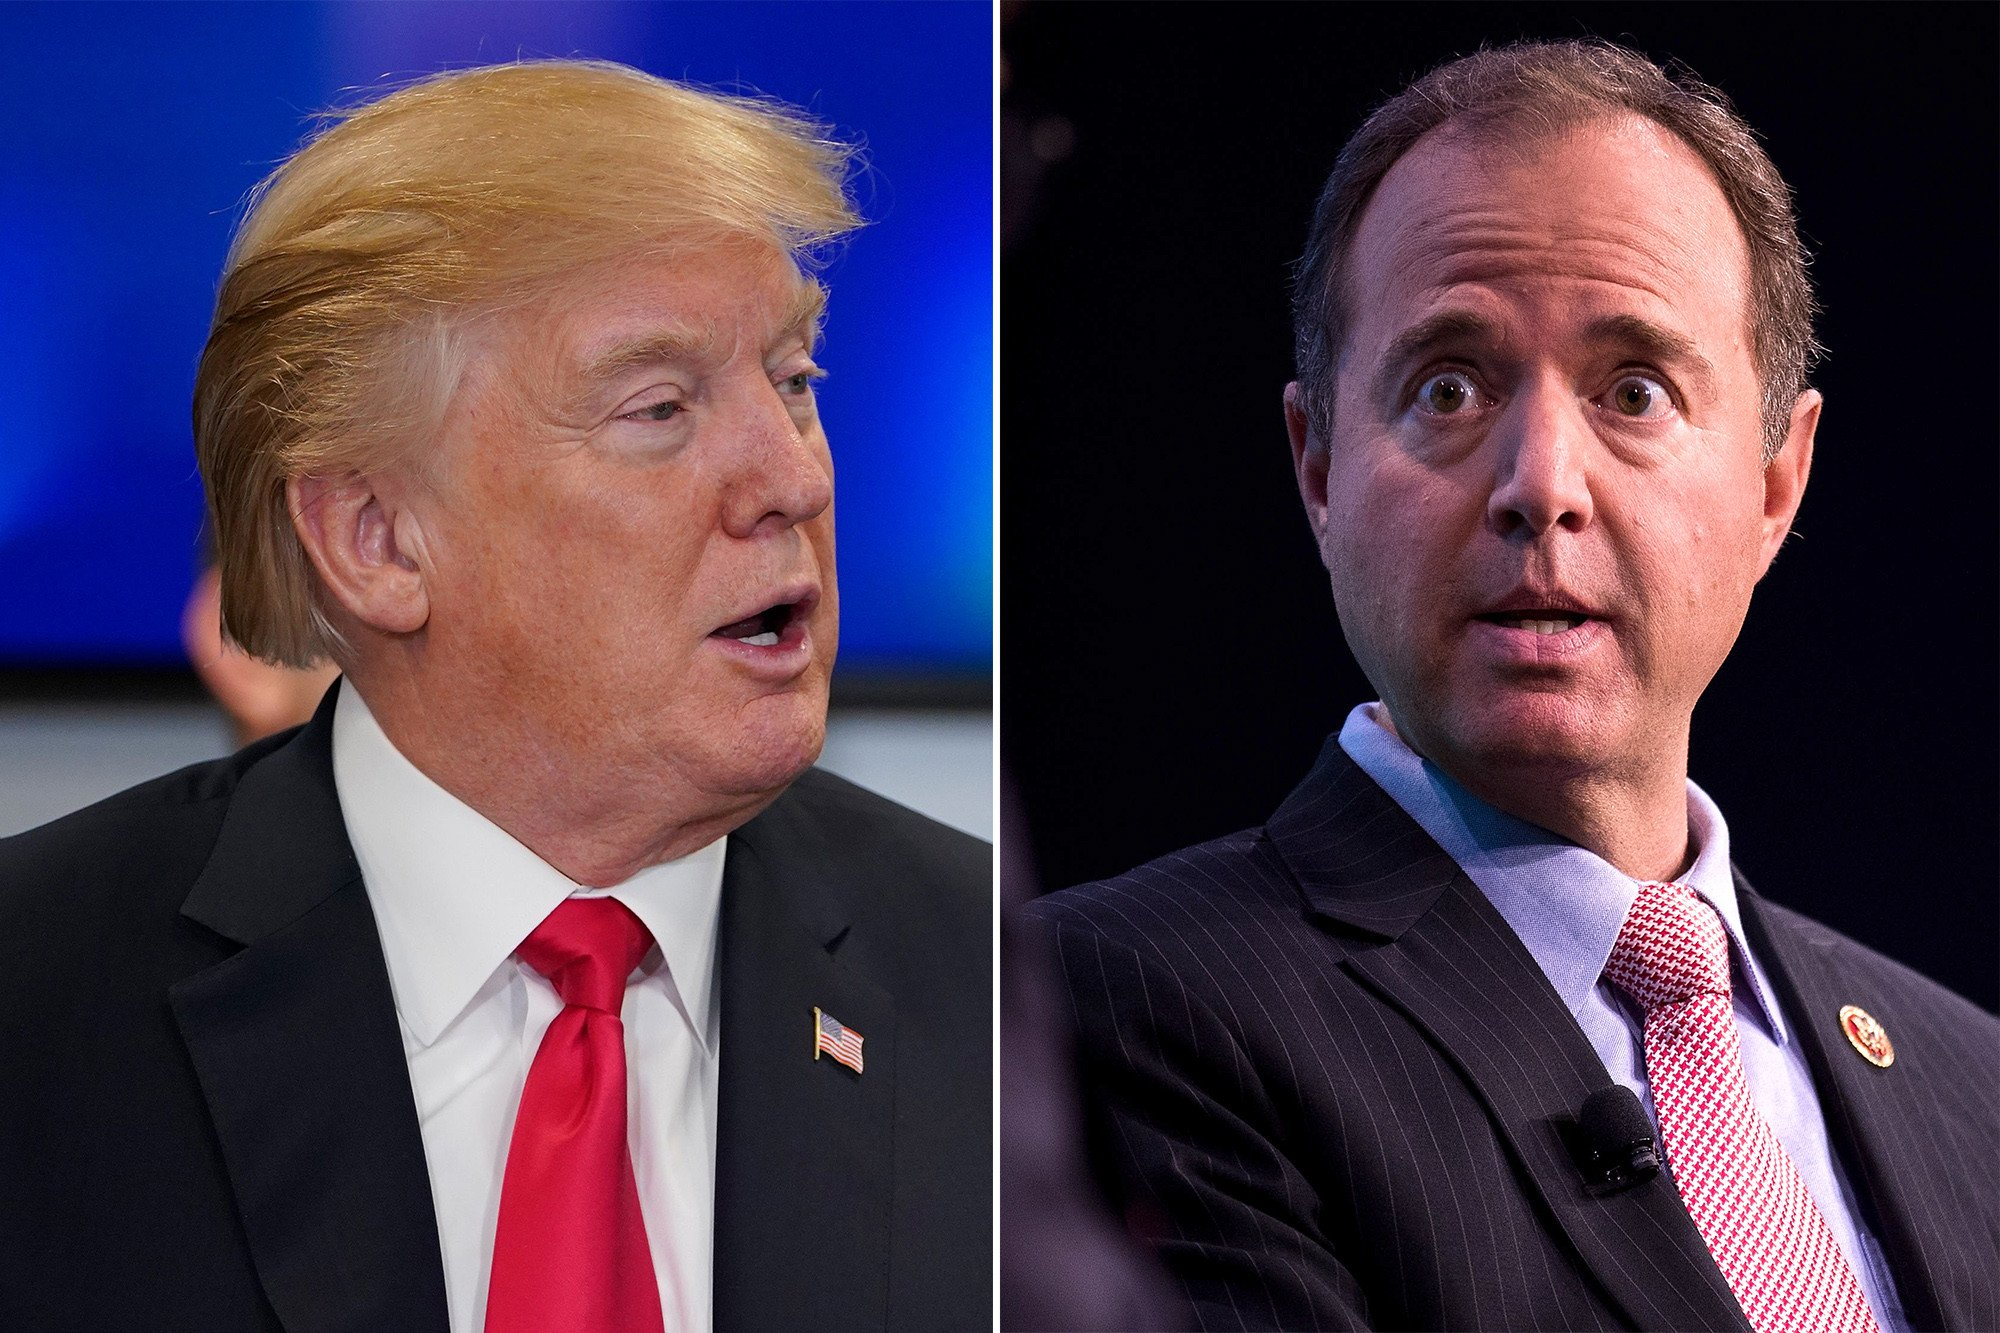 Trump slams Schiff as 'one of the biggest liars and leakers in Washington'